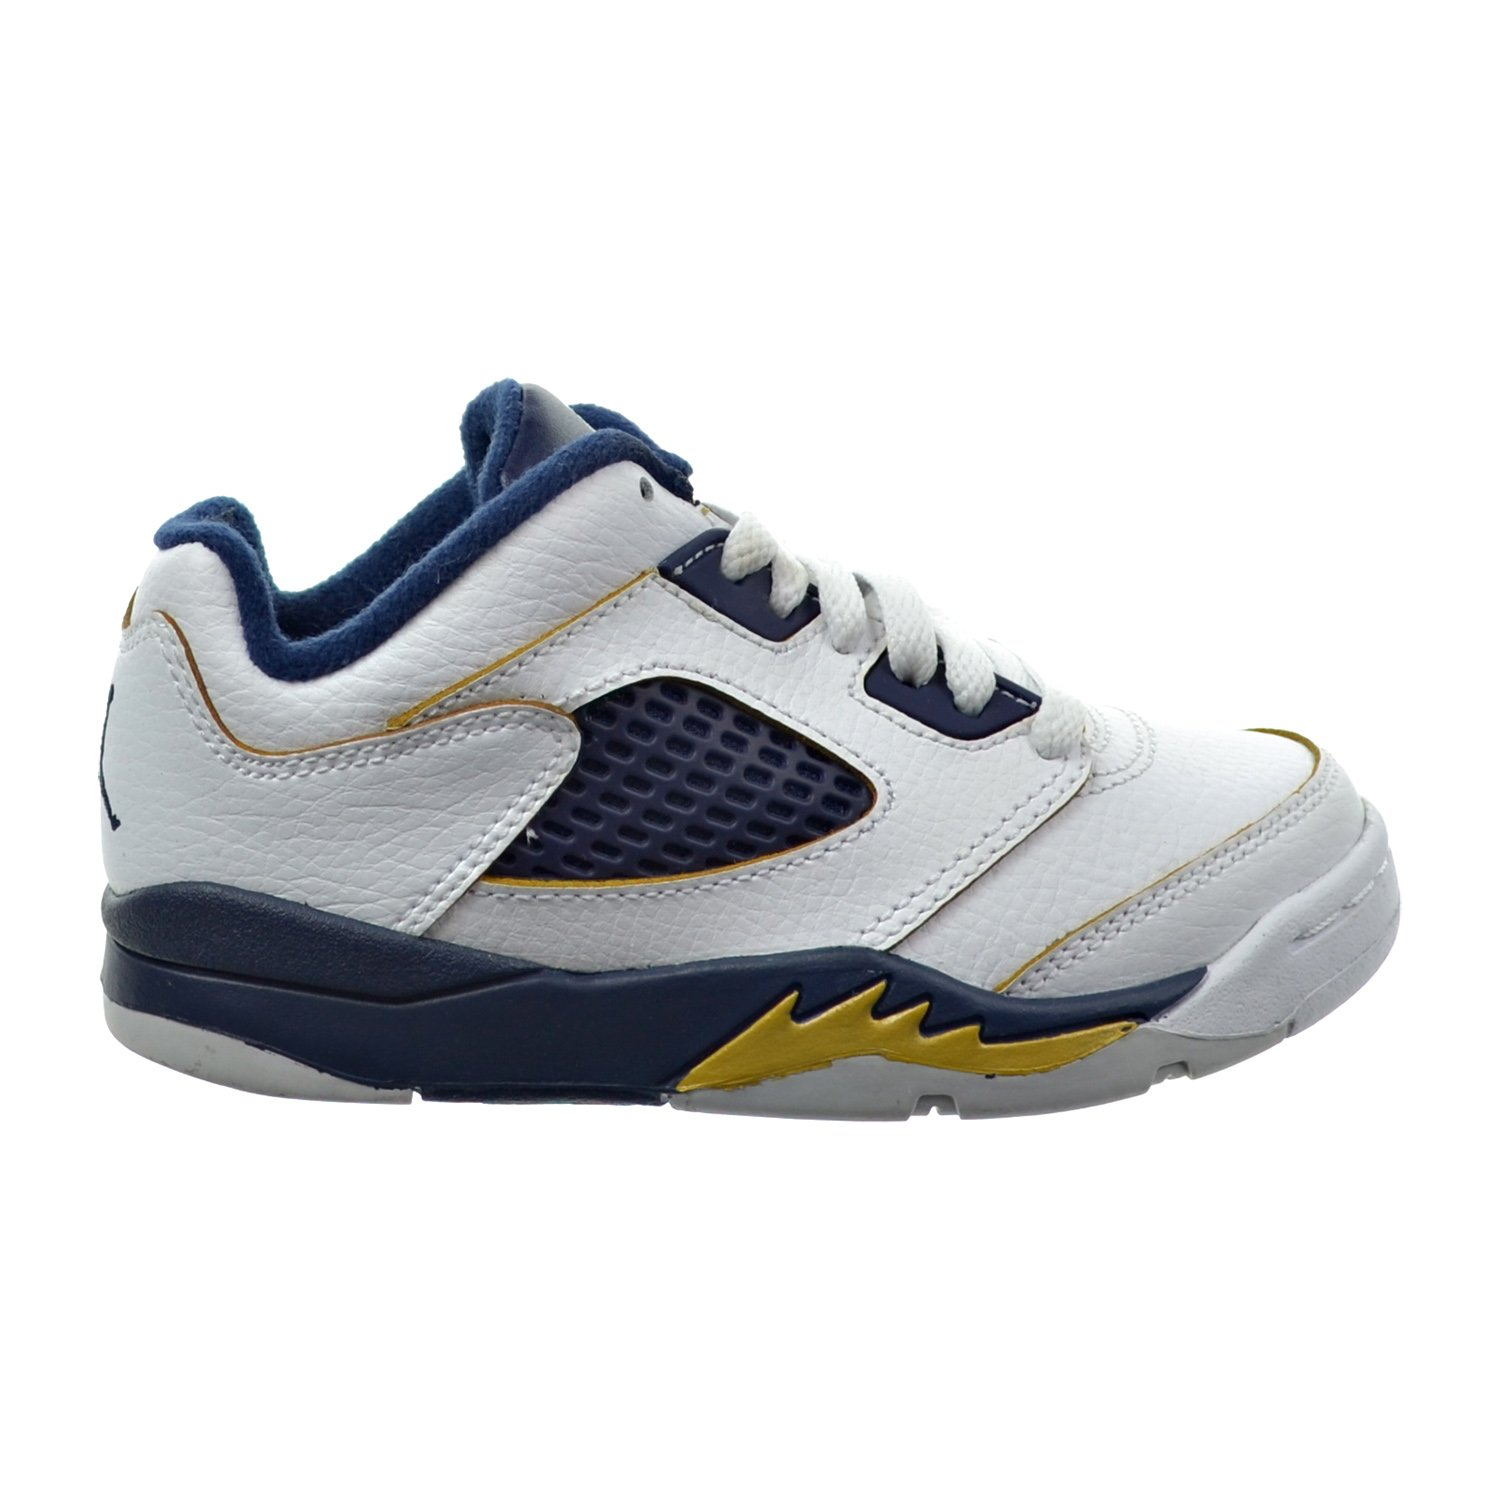 low priced ddb9d 3db50 Amazon.com | Jordan 5 Retro Low (PS)